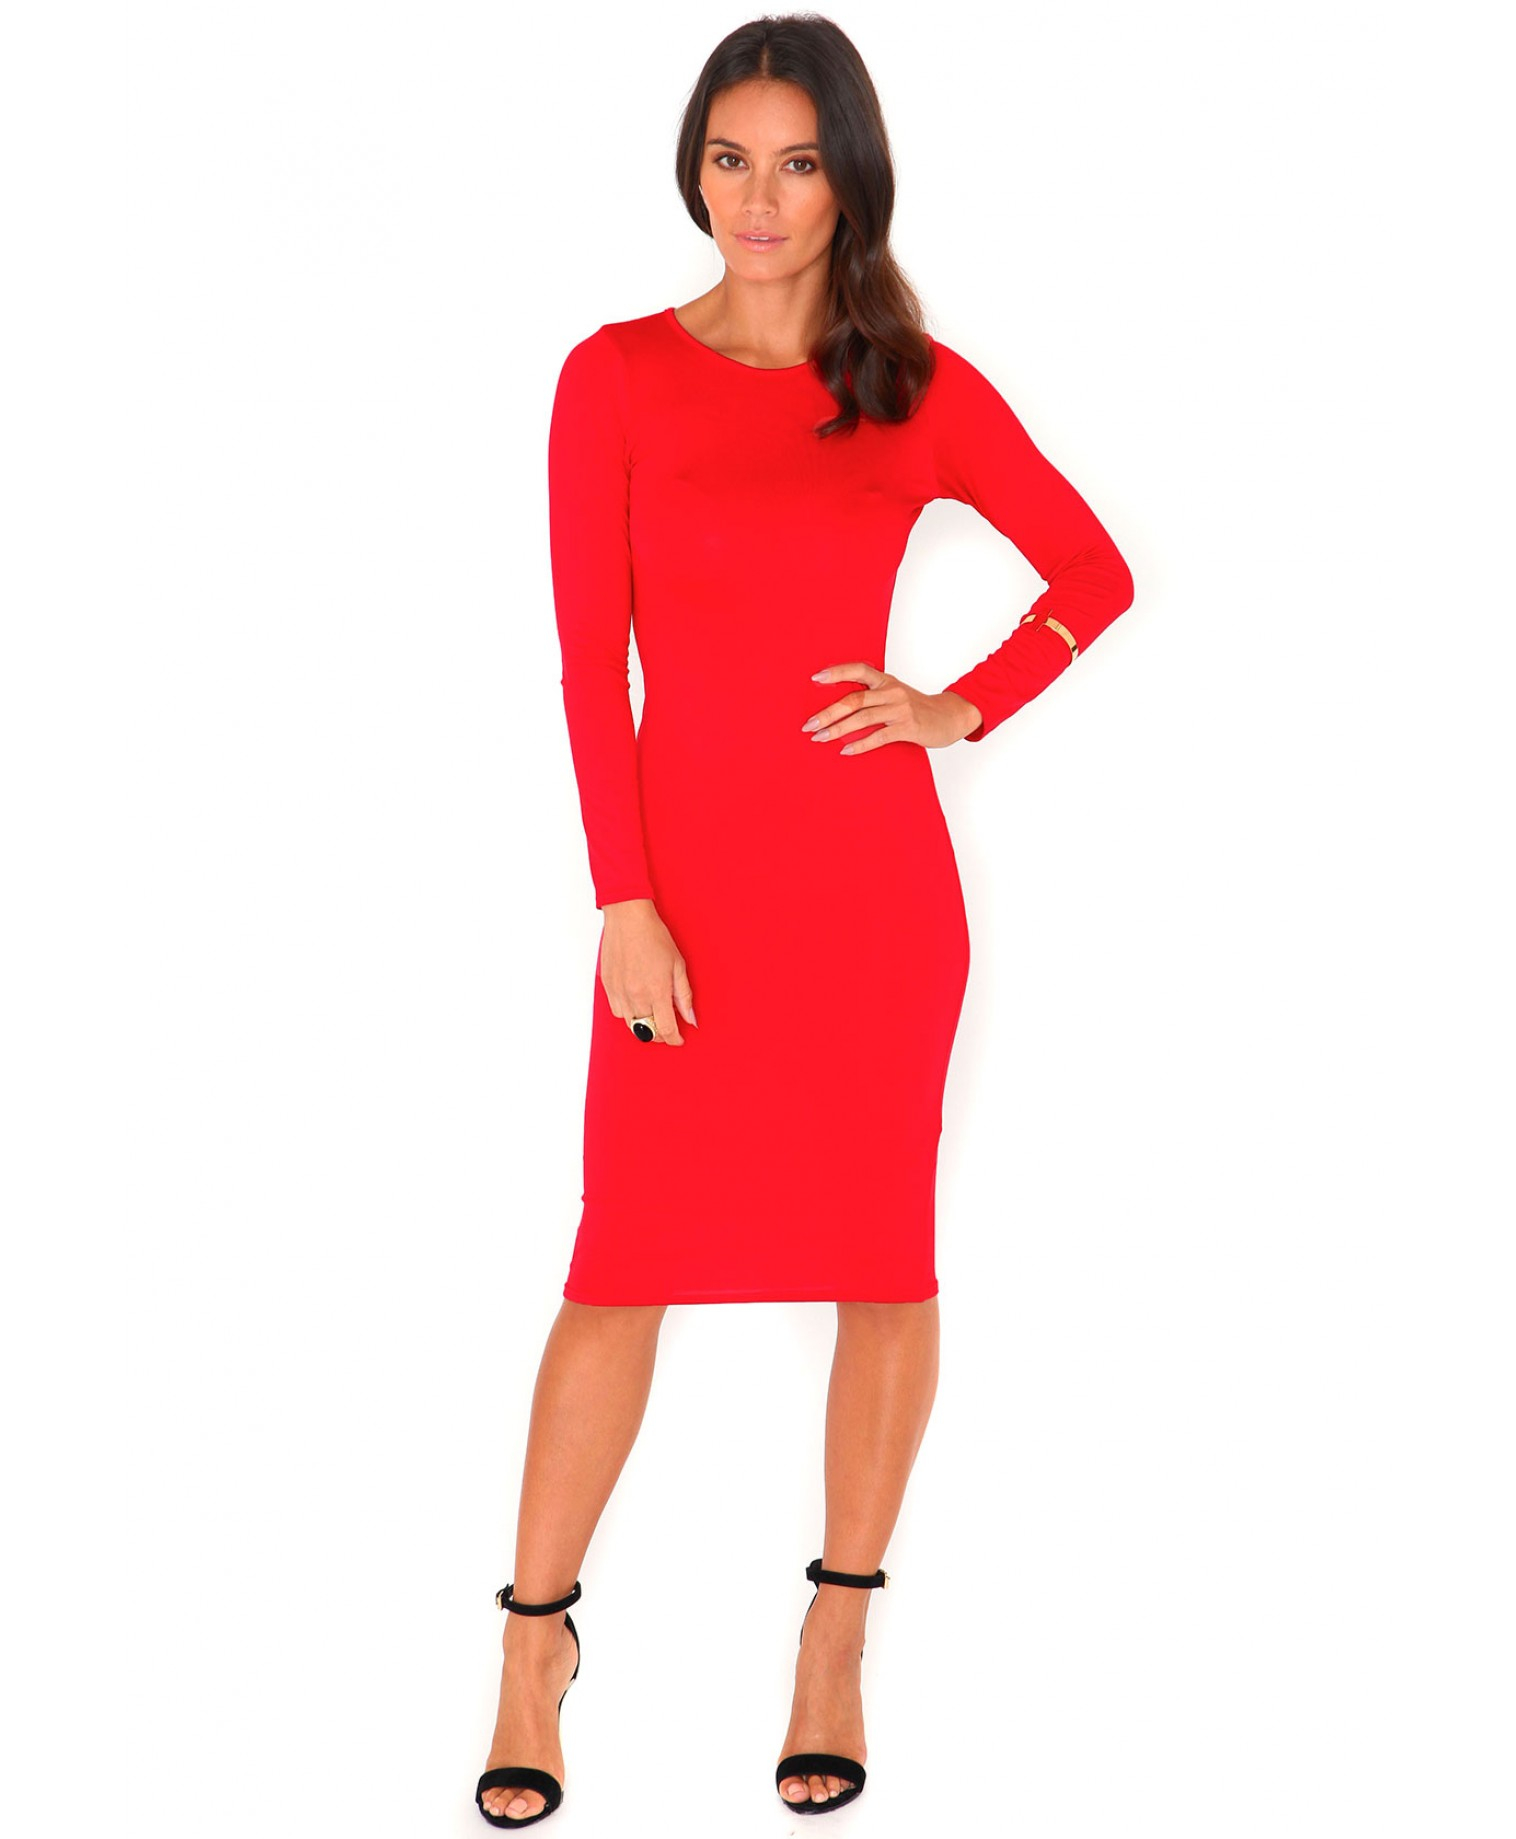 Maurices mean bodycon dress it values does what turkey